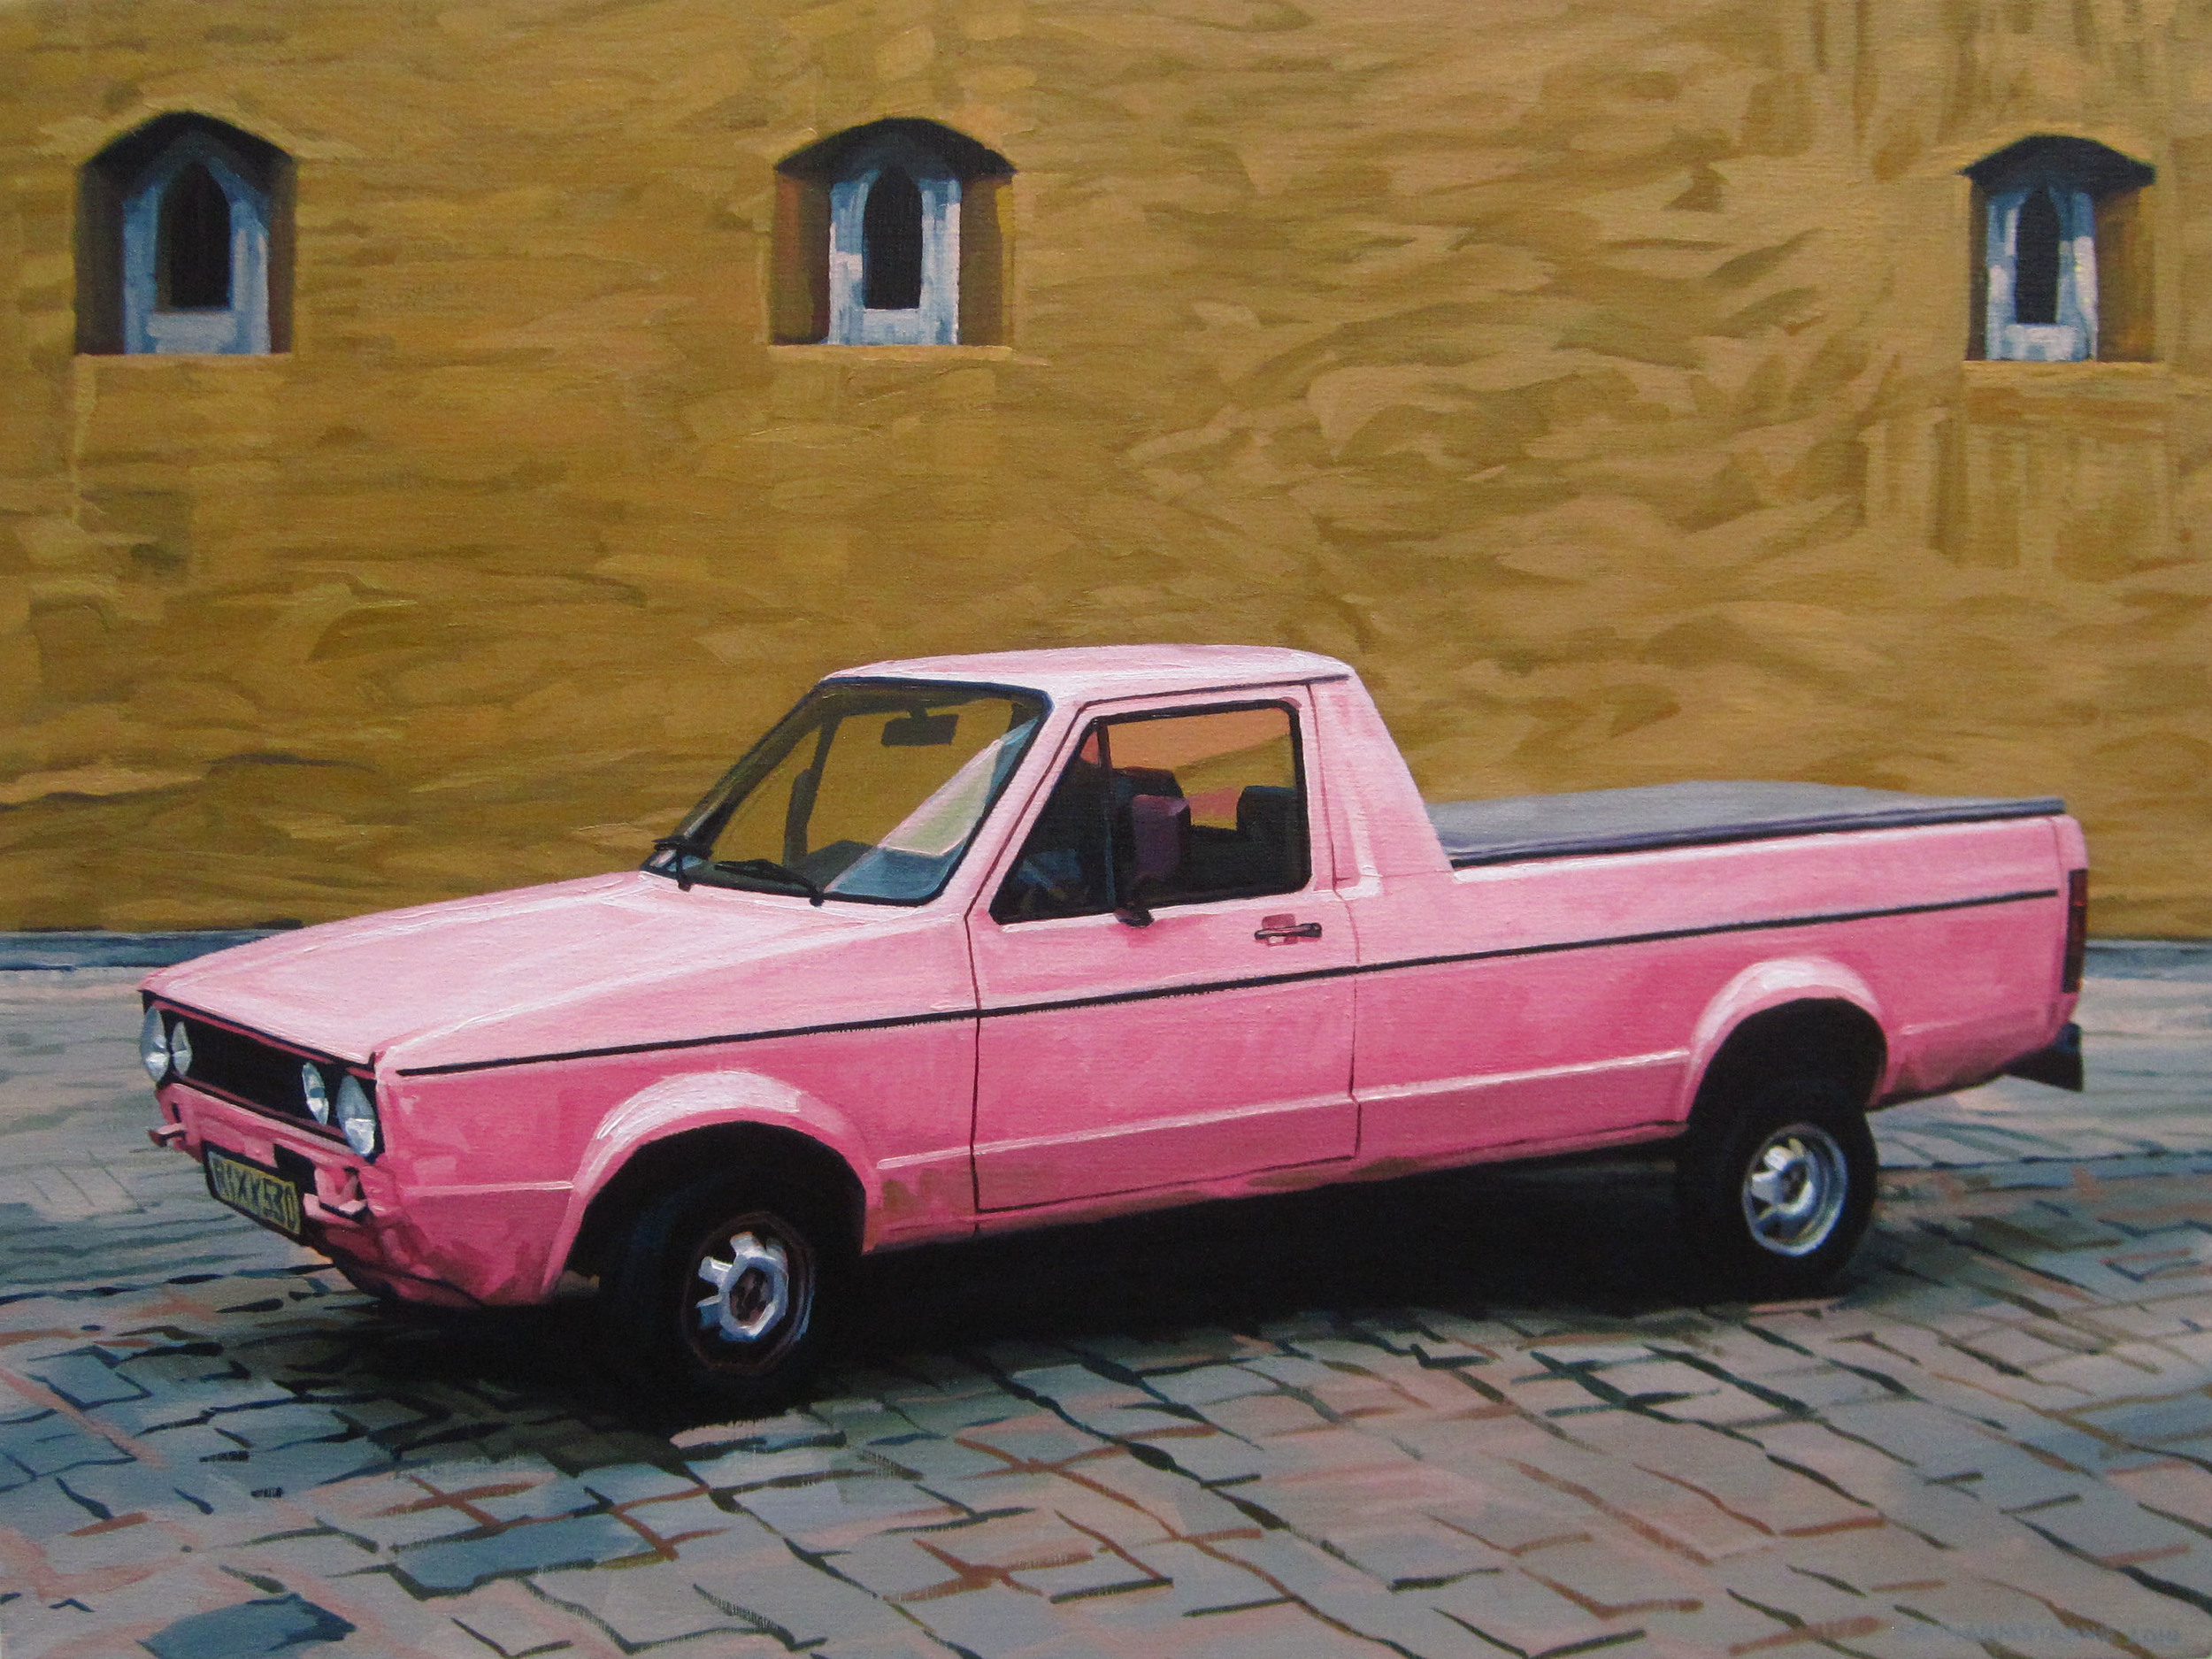 The Little Pink Truck